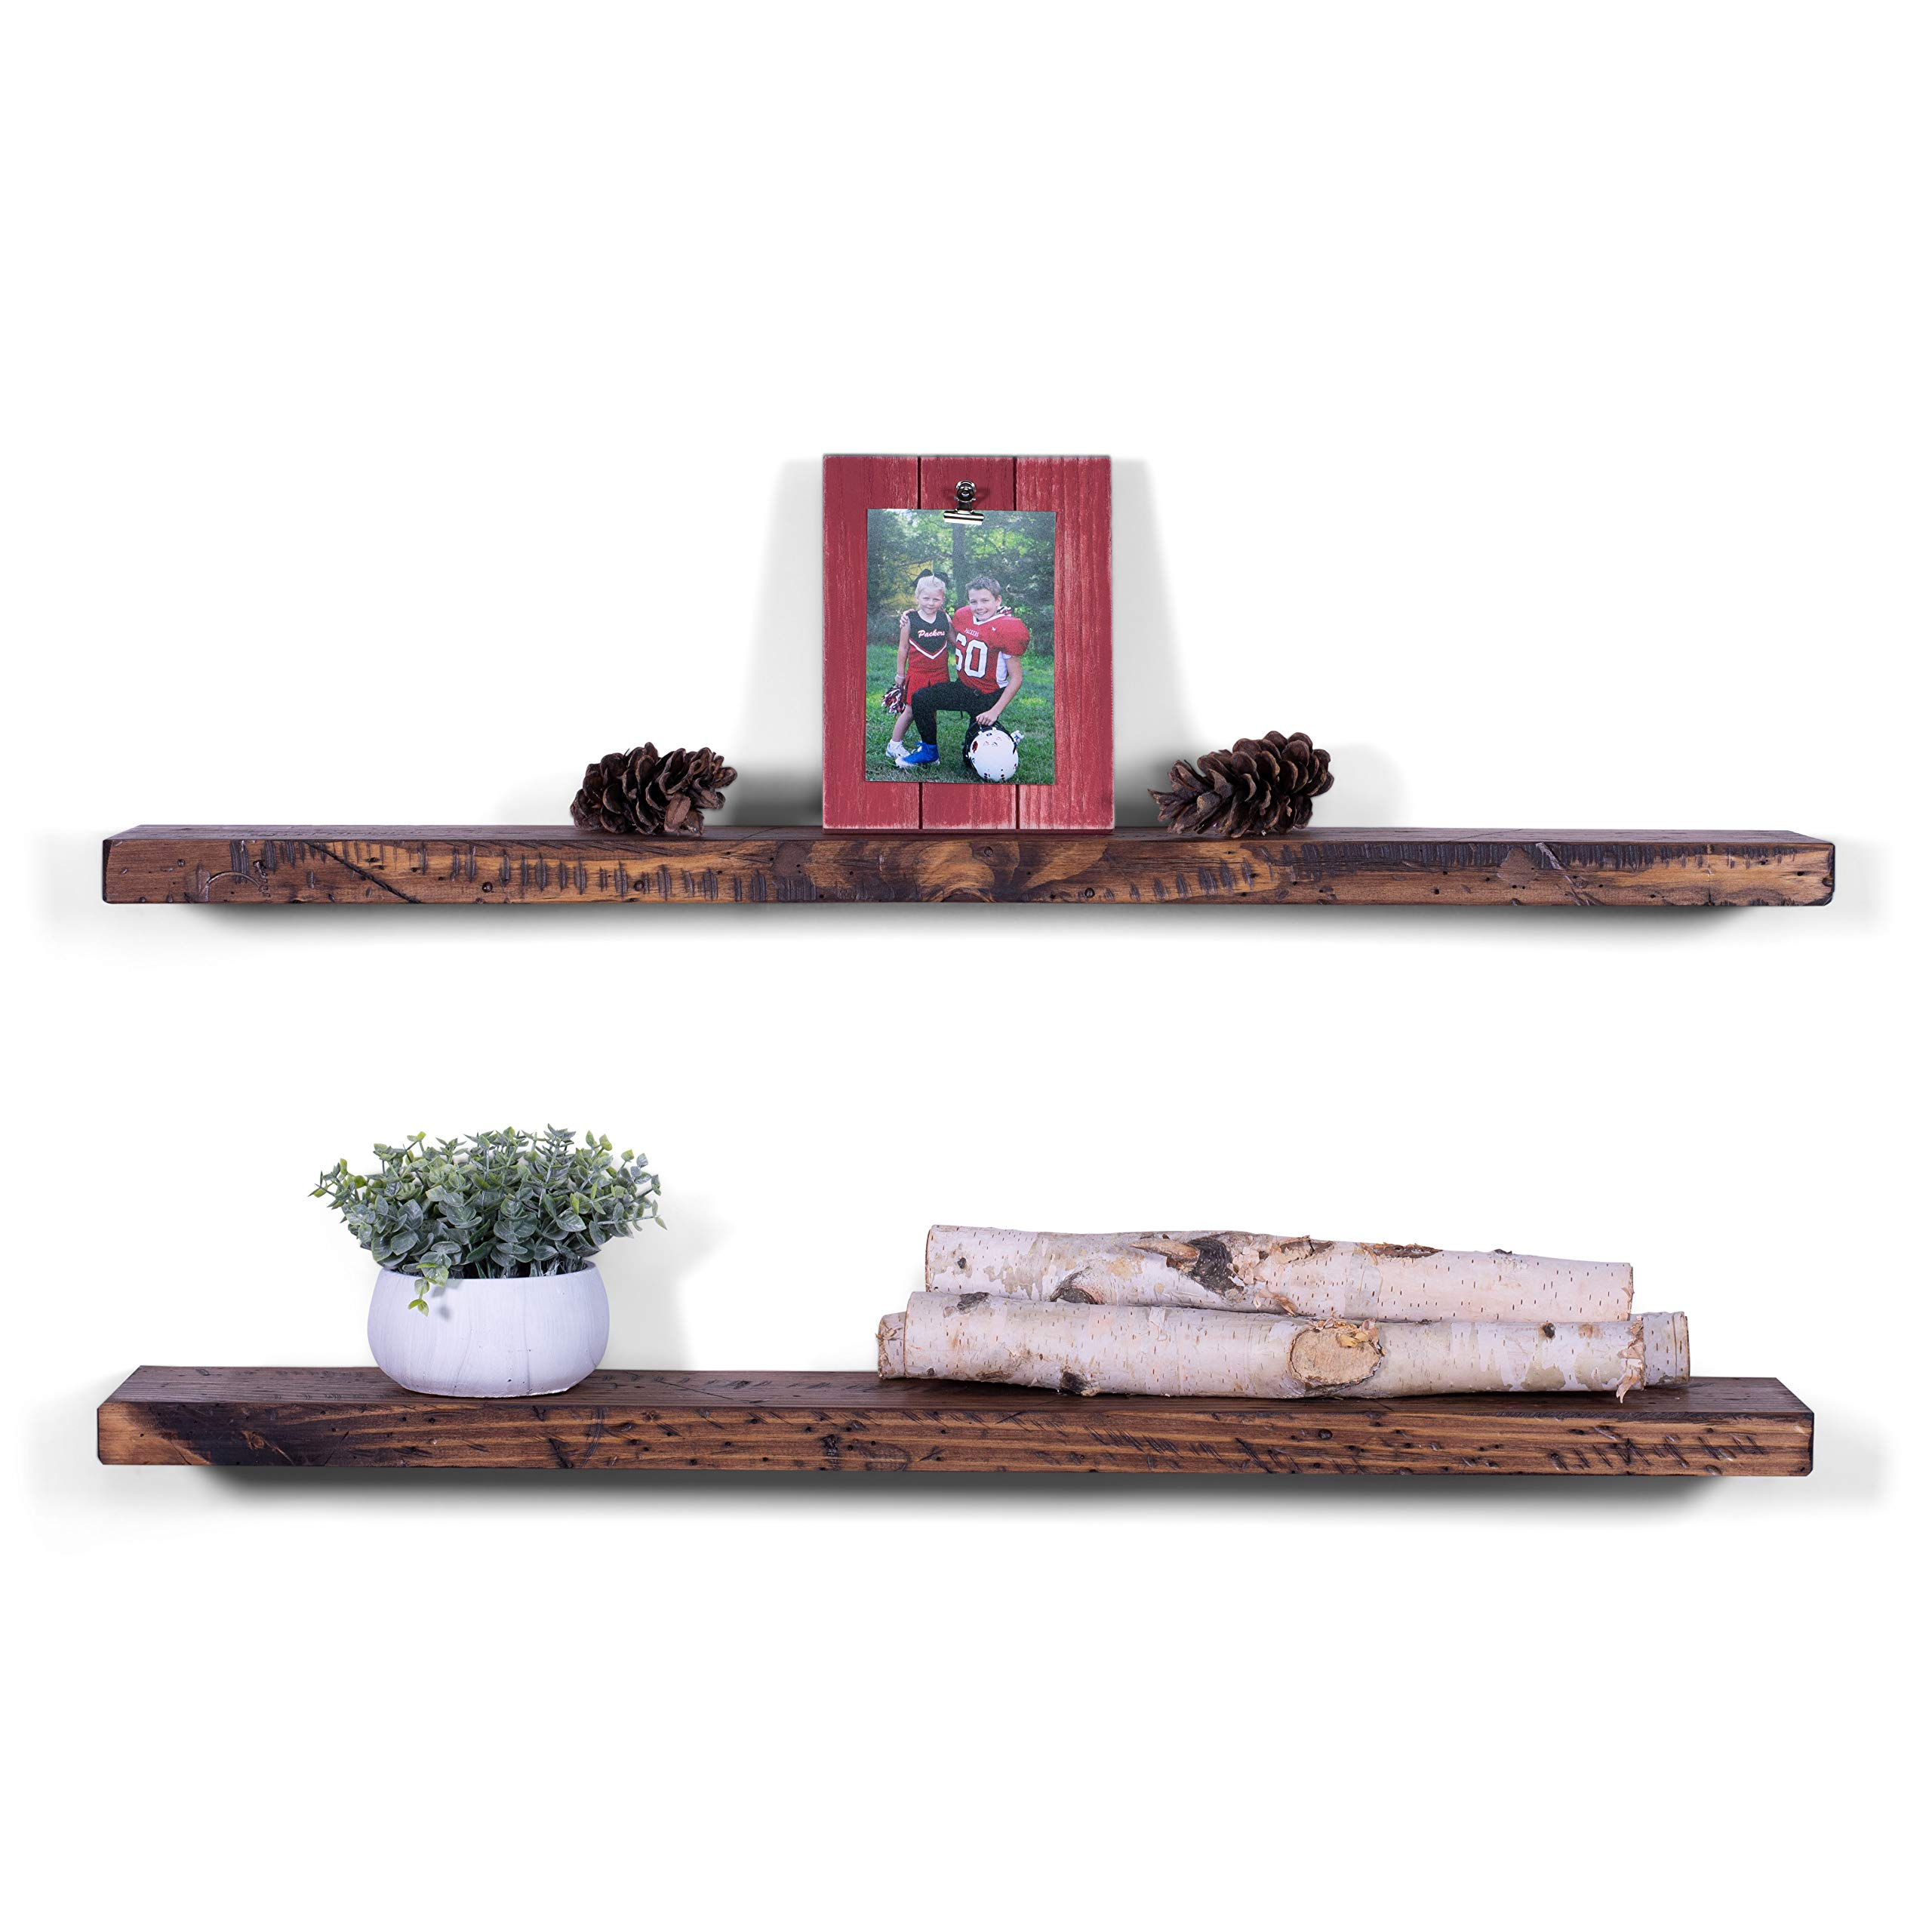 dakoda love deep rugged distressed floating inch shelf shelves usa handmade clear coat finish countersunk hidden brackets beautiful grain woodland home decor diy small bathroom